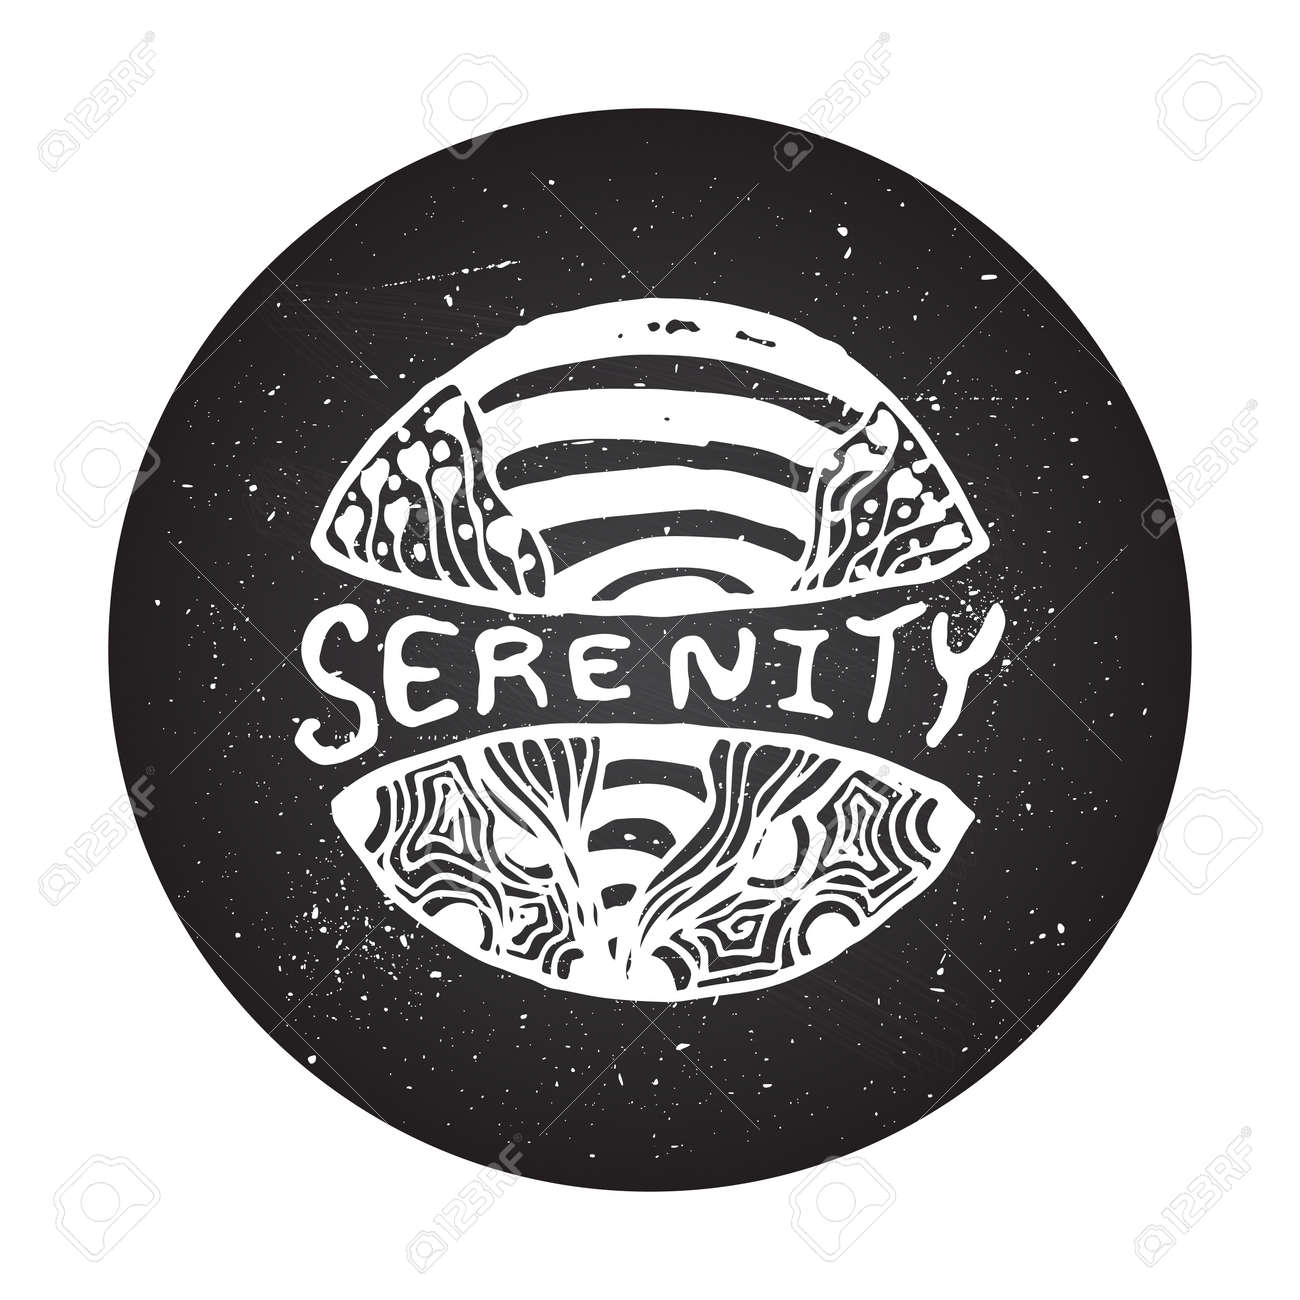 Serenity sign on chalkboard background detailed hand drawn serenity sign on chalkboard background detailed hand drawn zentangle logo for ethnic shop yoga biocorpaavc Gallery